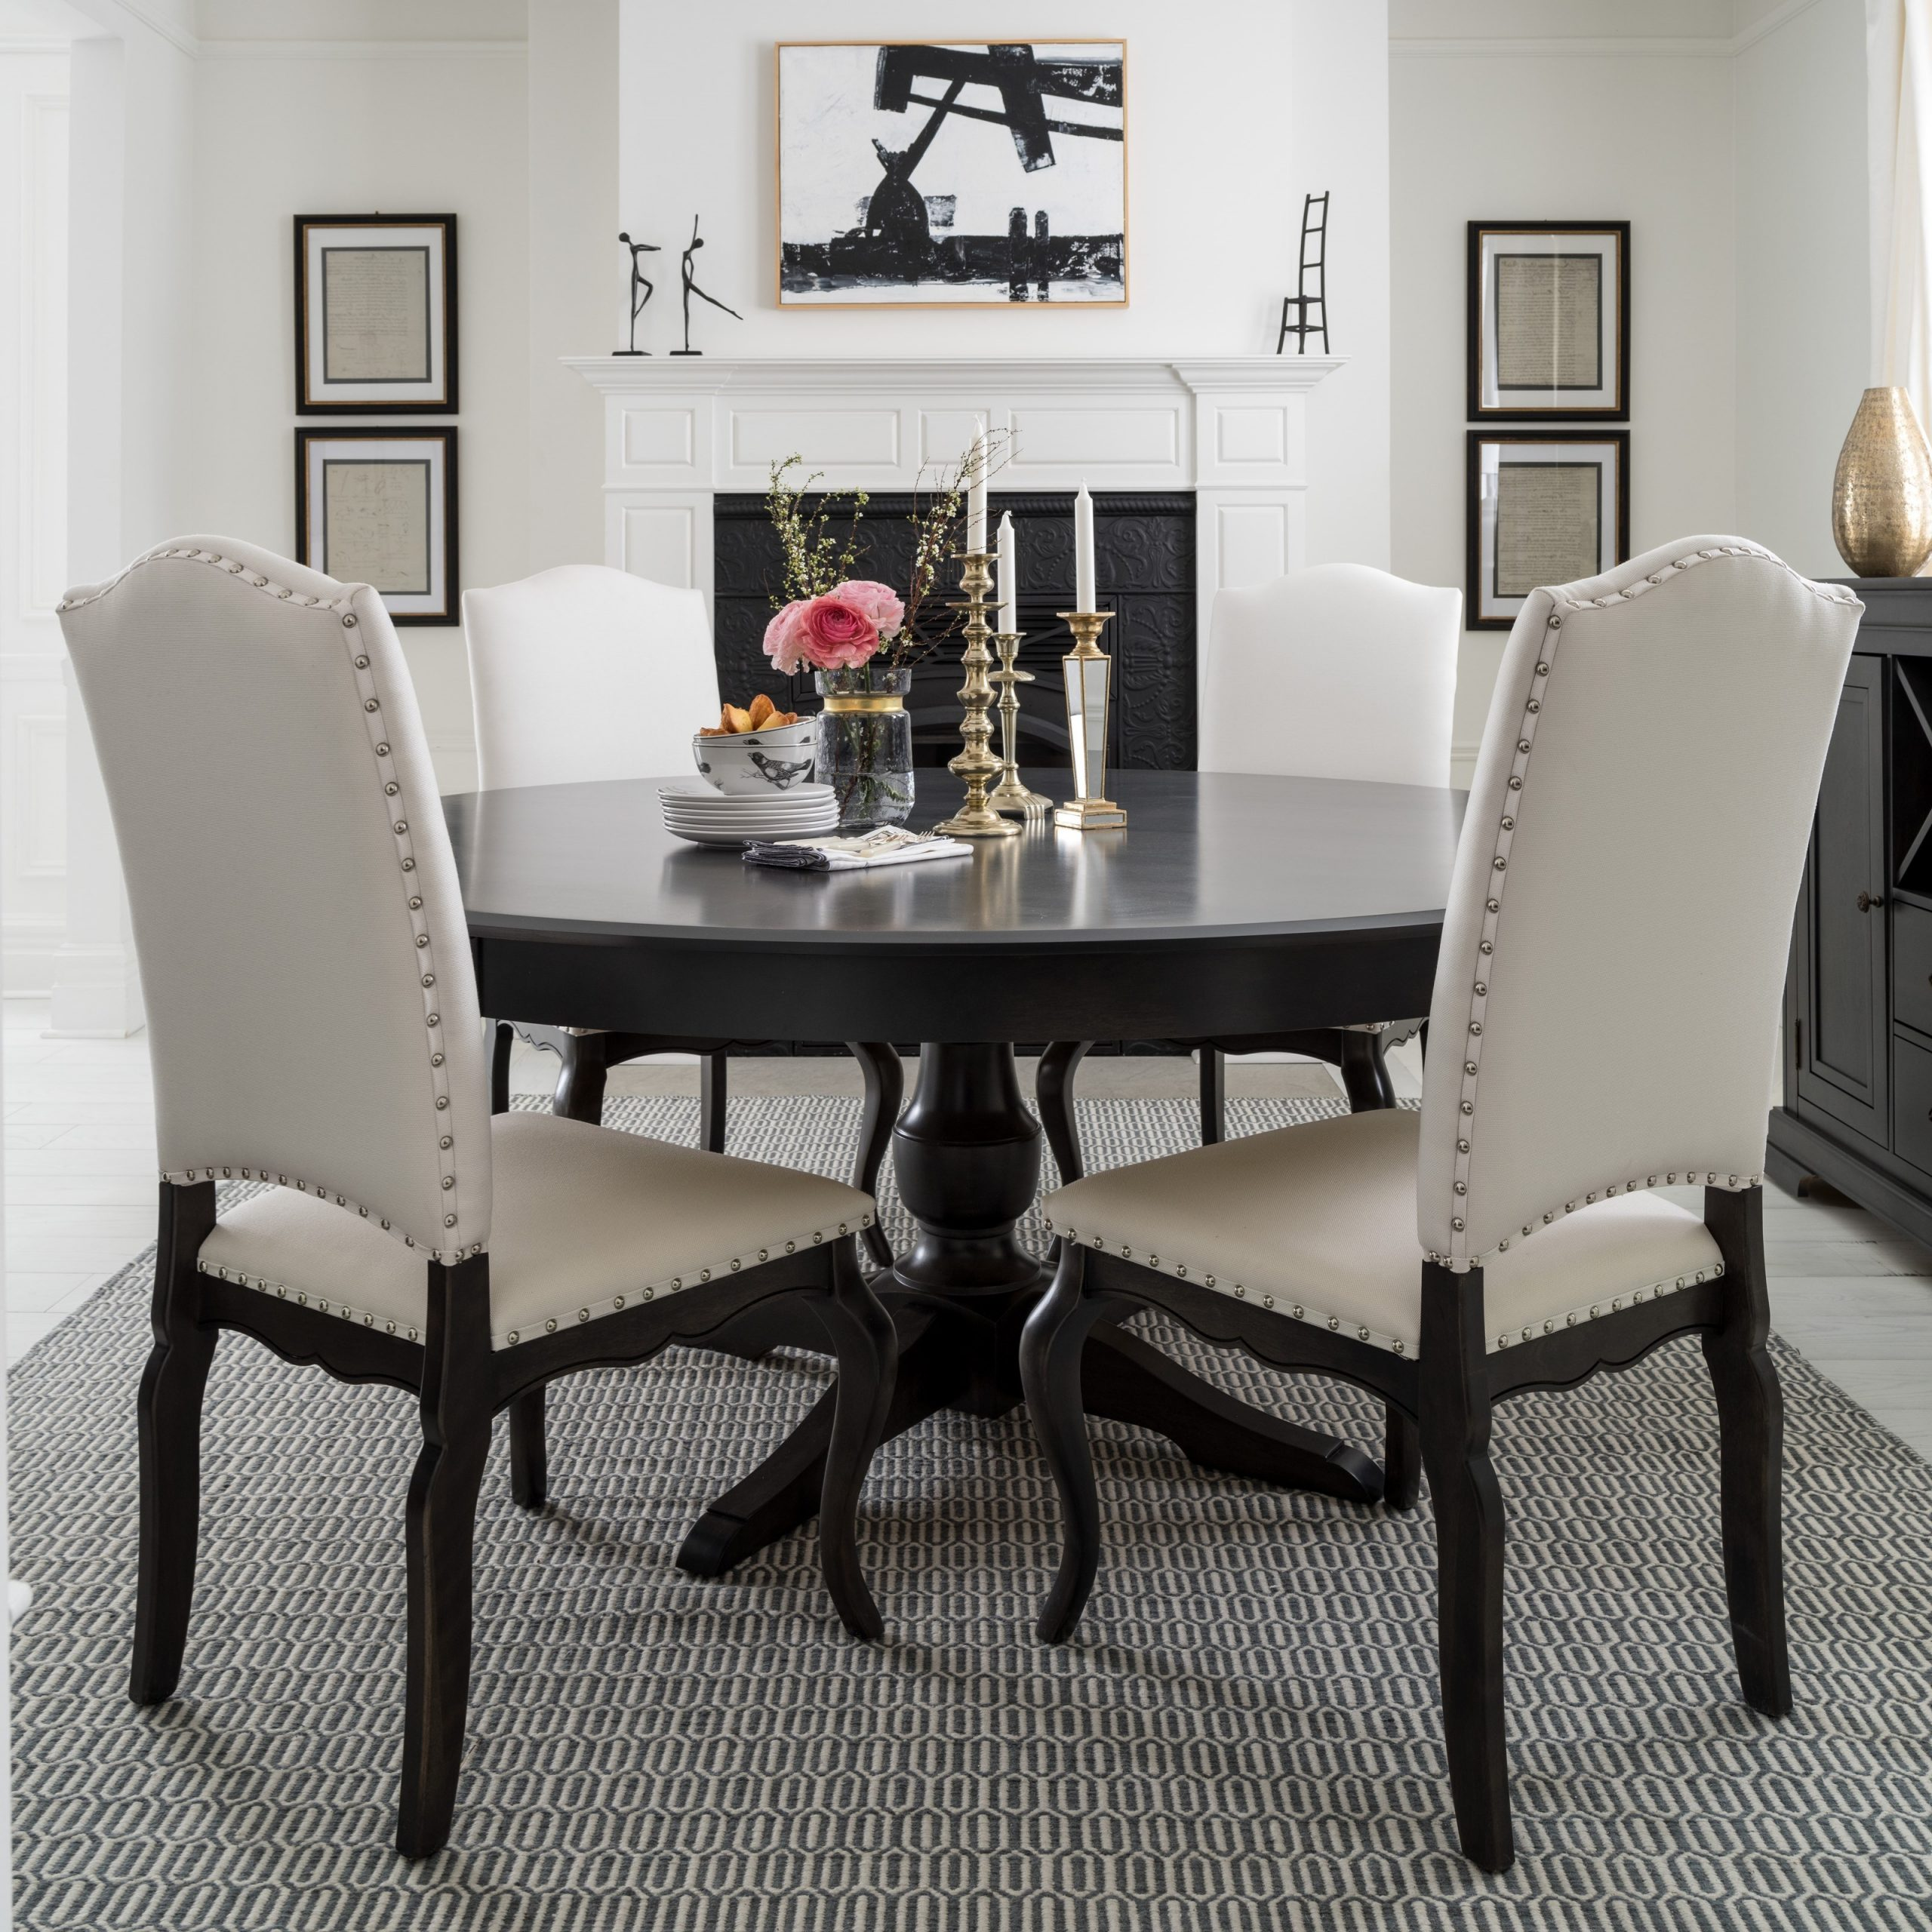 Recent Canadel Custom Dining Customizable Round Table With Single With Bistro Transitional 4 Seating Square Dining Tables (View 14 of 24)